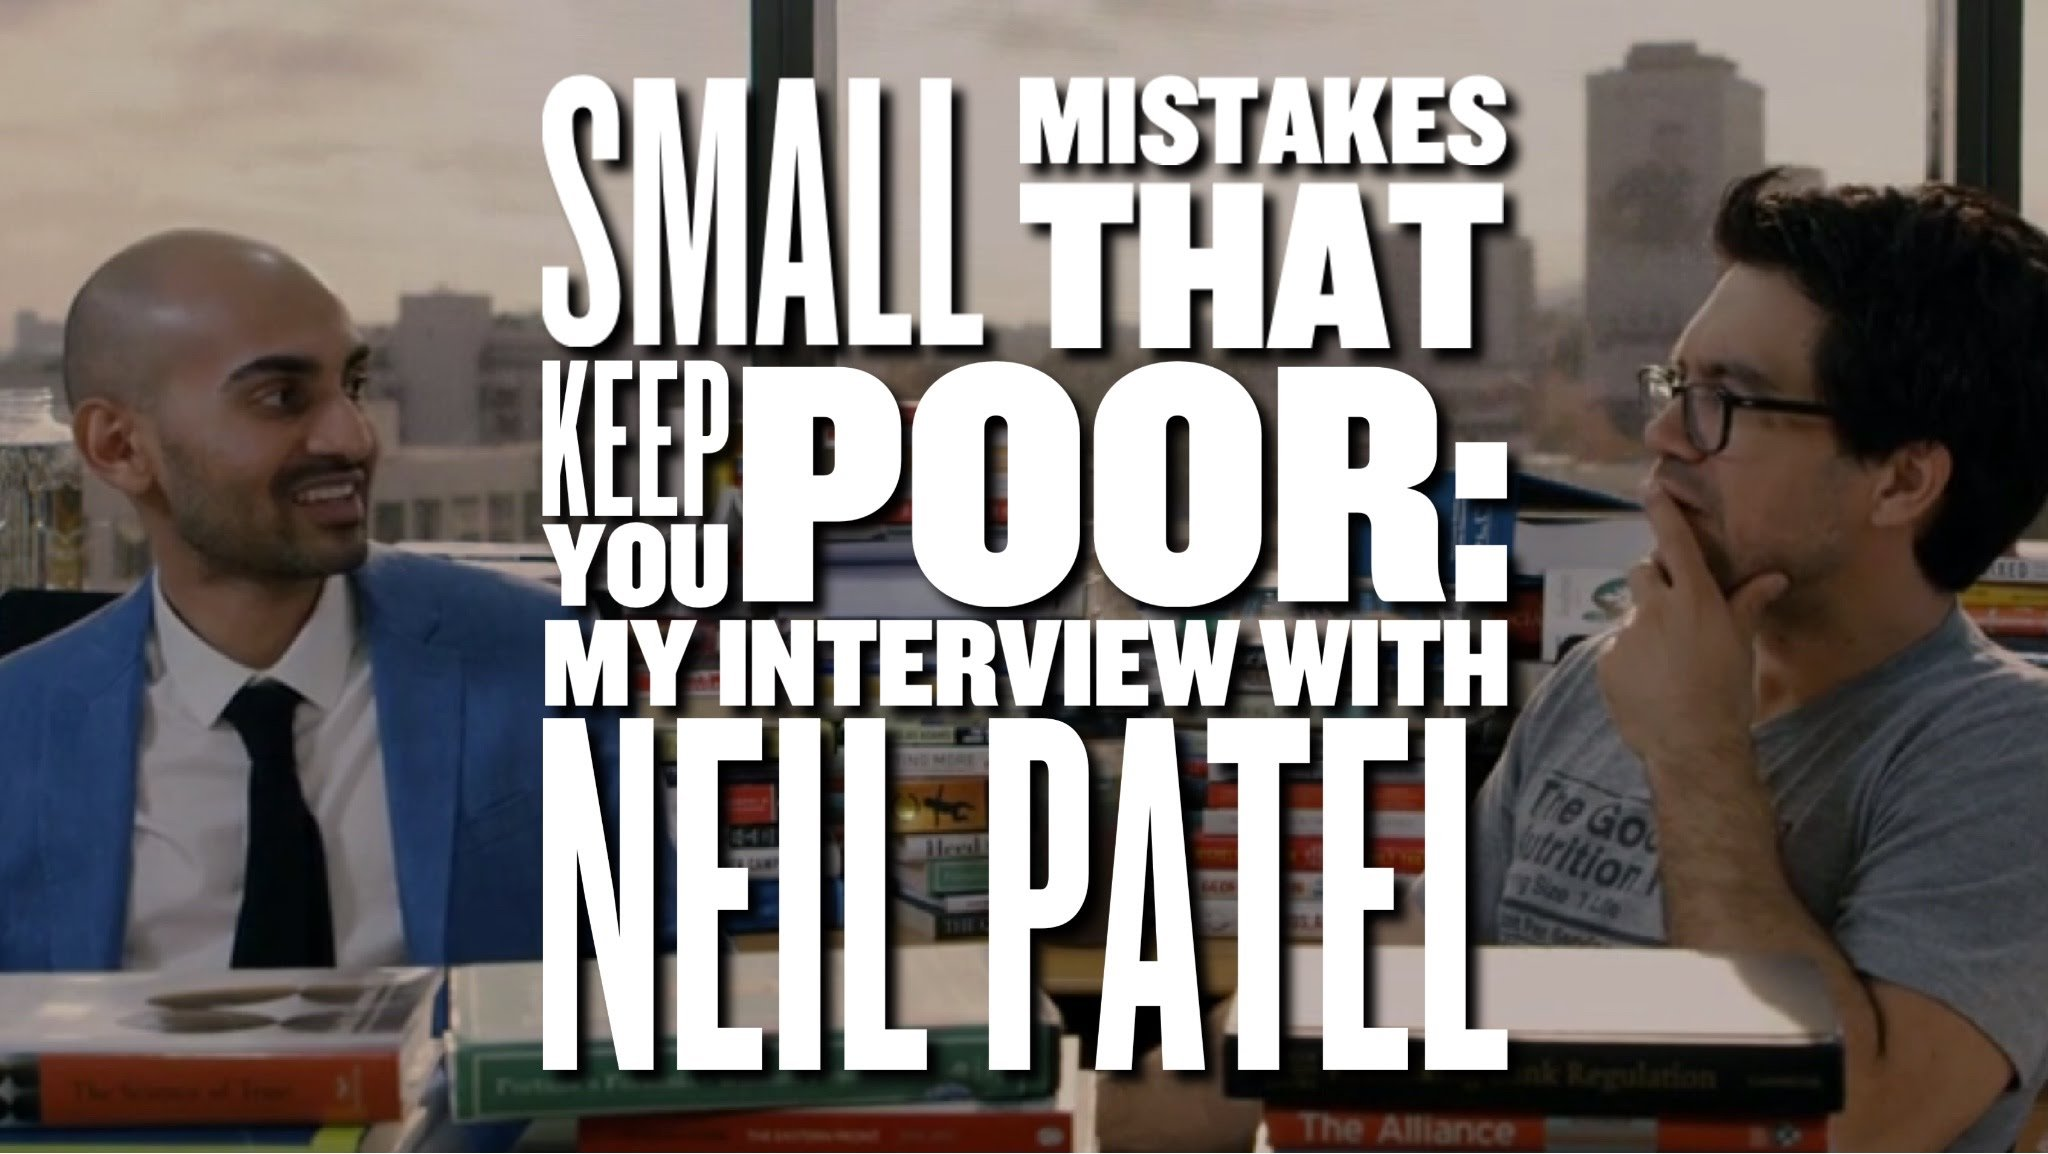 Neil Patel taalks about Small Mistakes That Keep You Poor